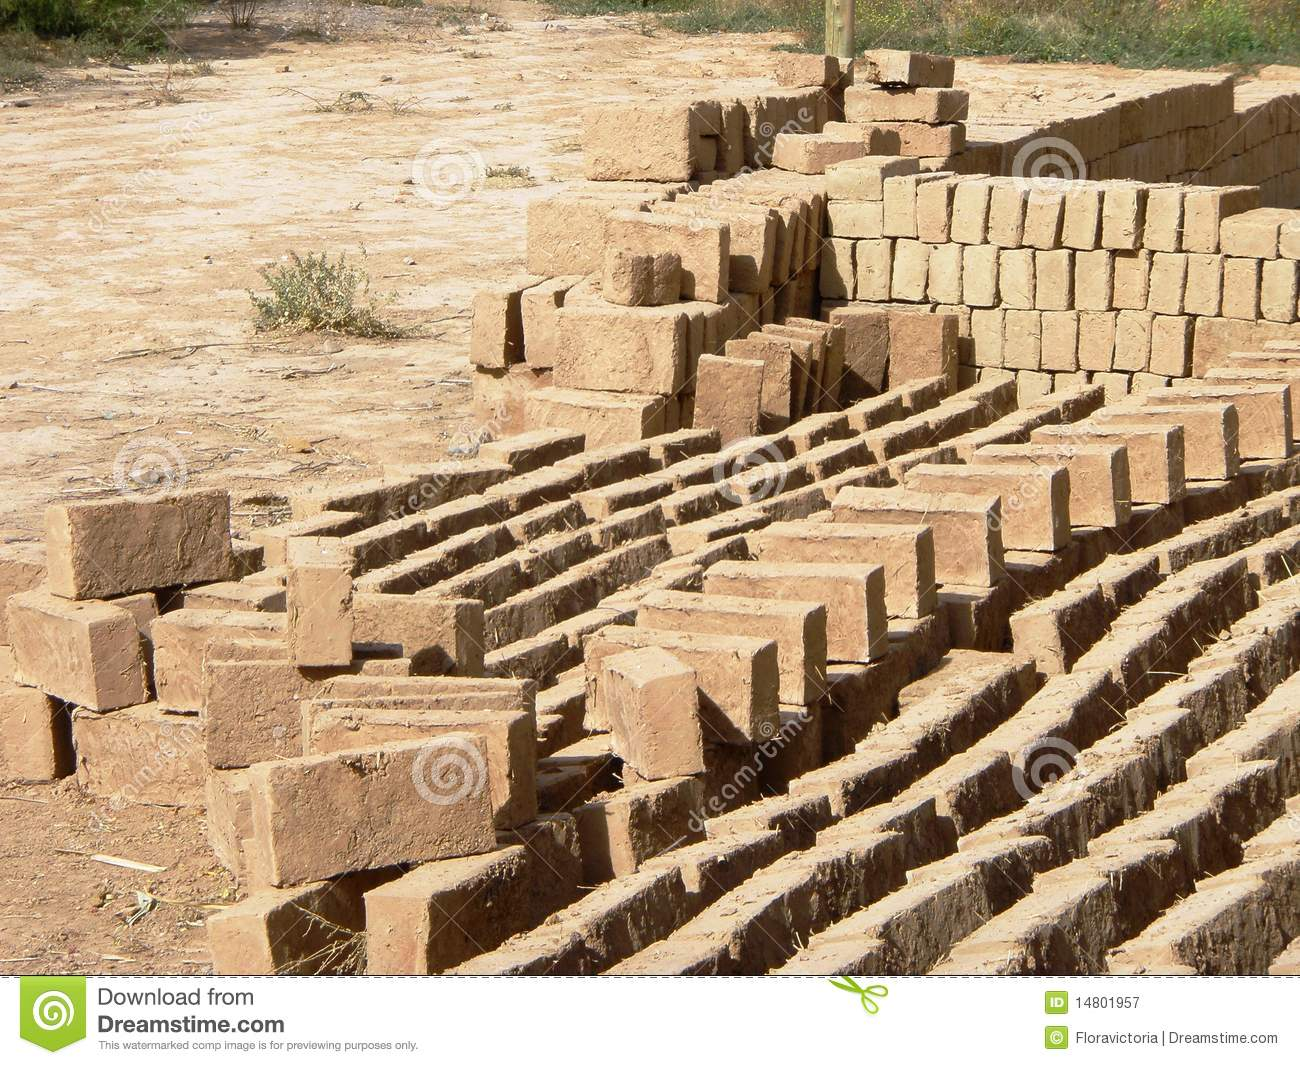 Adobe bricks sustainable building materials 1 stock for Sustainable roofing materials